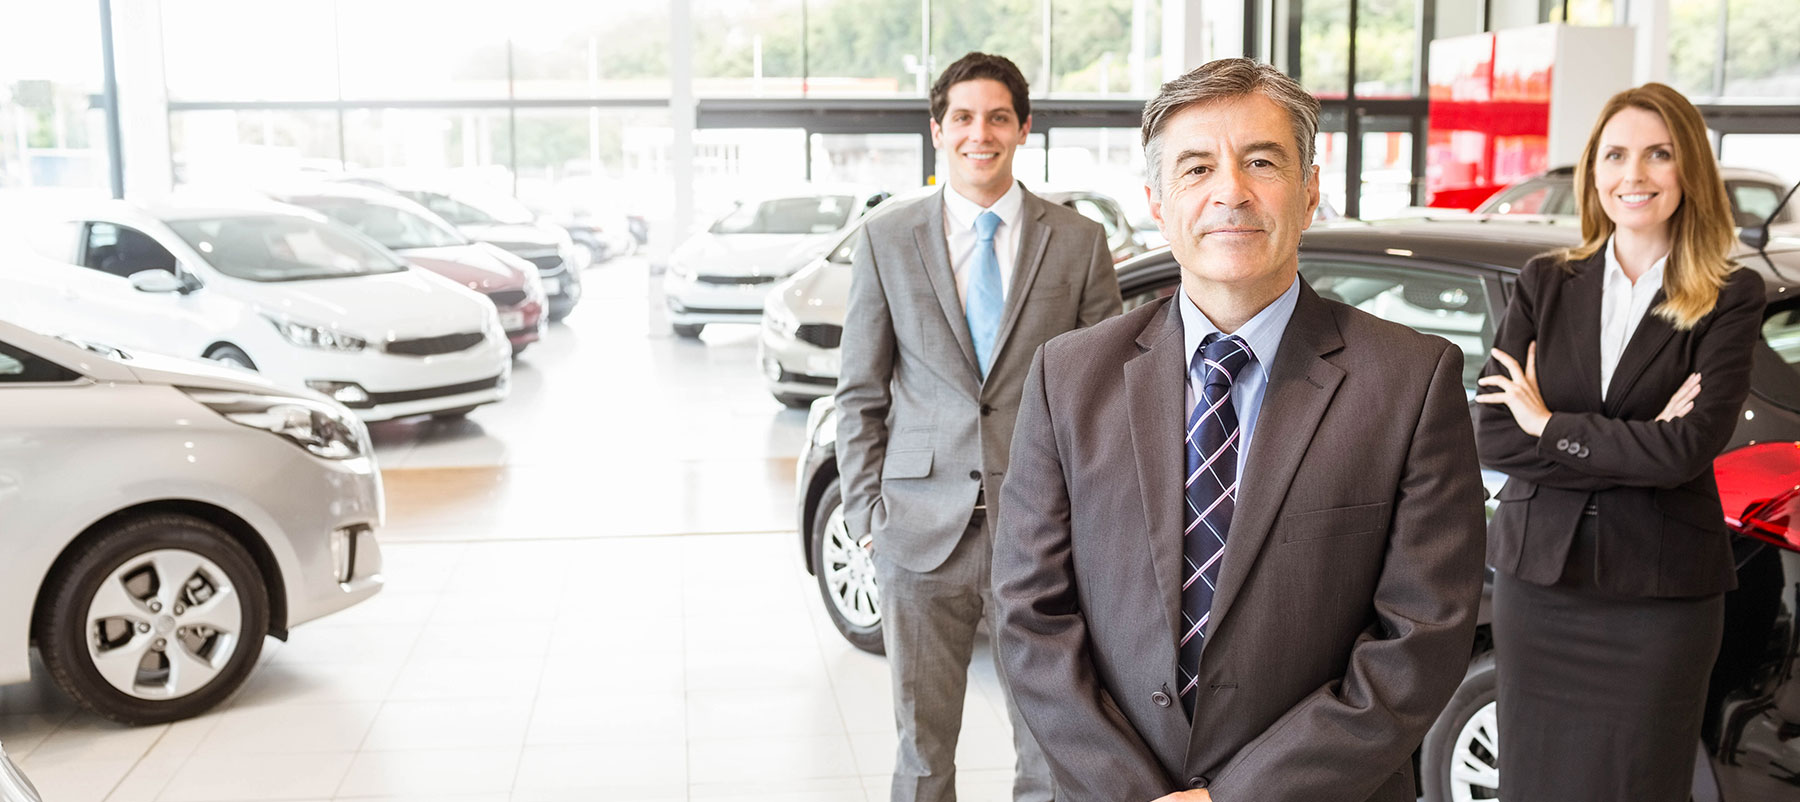 West bloomfield automotive jobs mercedes benz of for Mercedes benz sales jobs